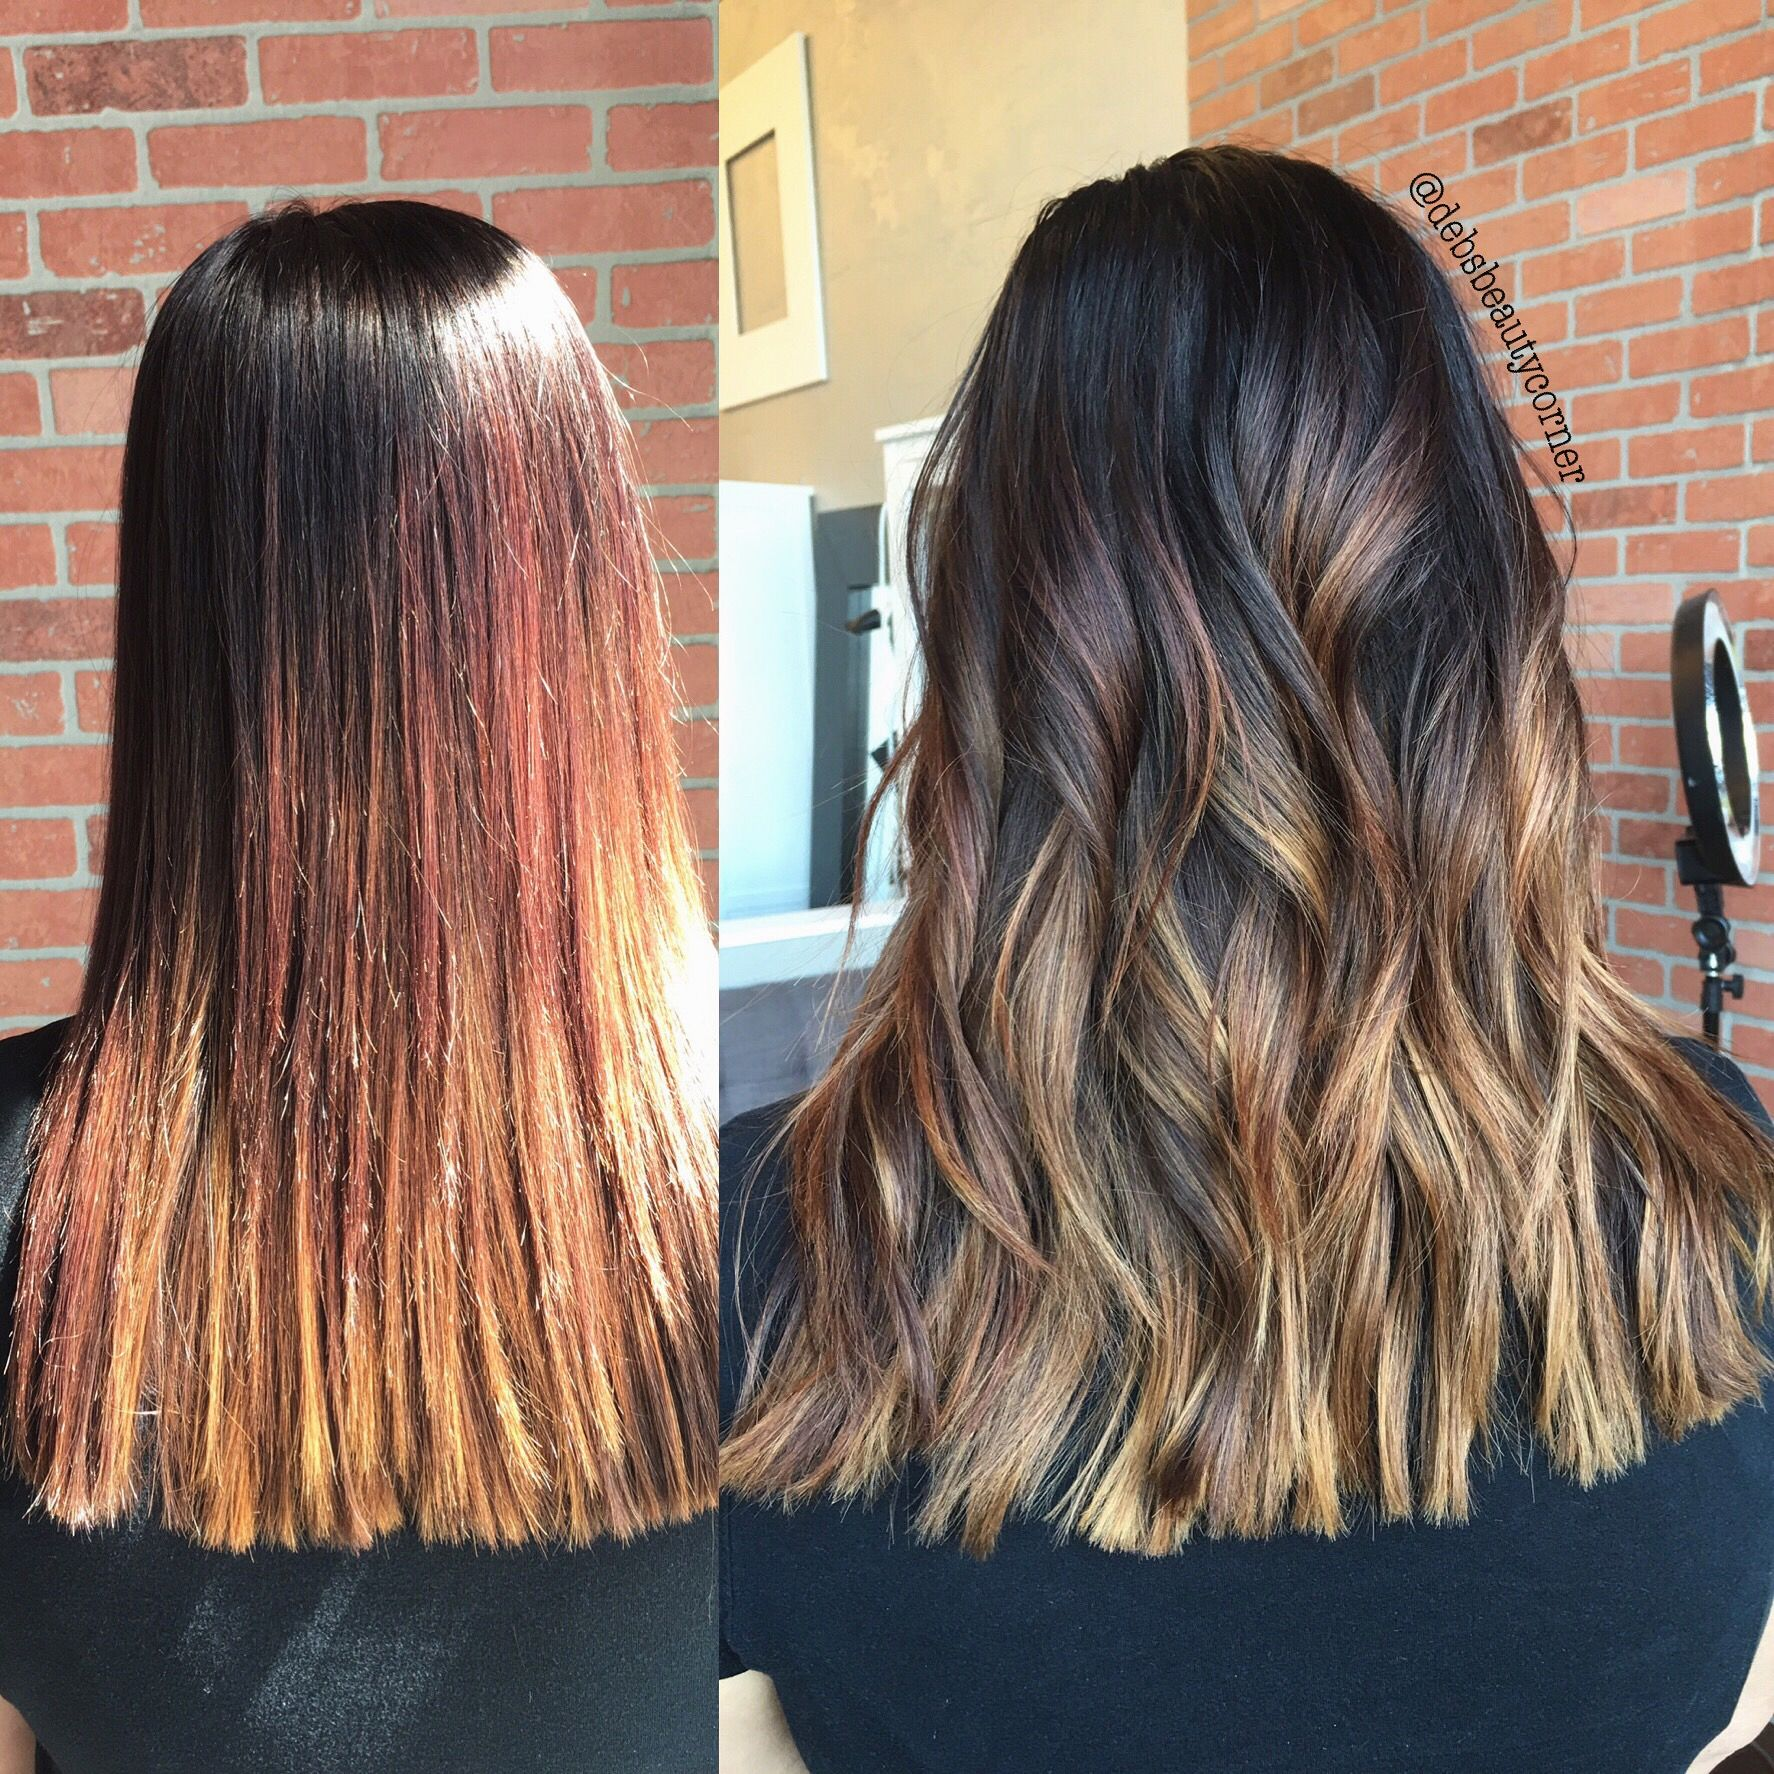 Hair coloring · Balayage transformation before and after